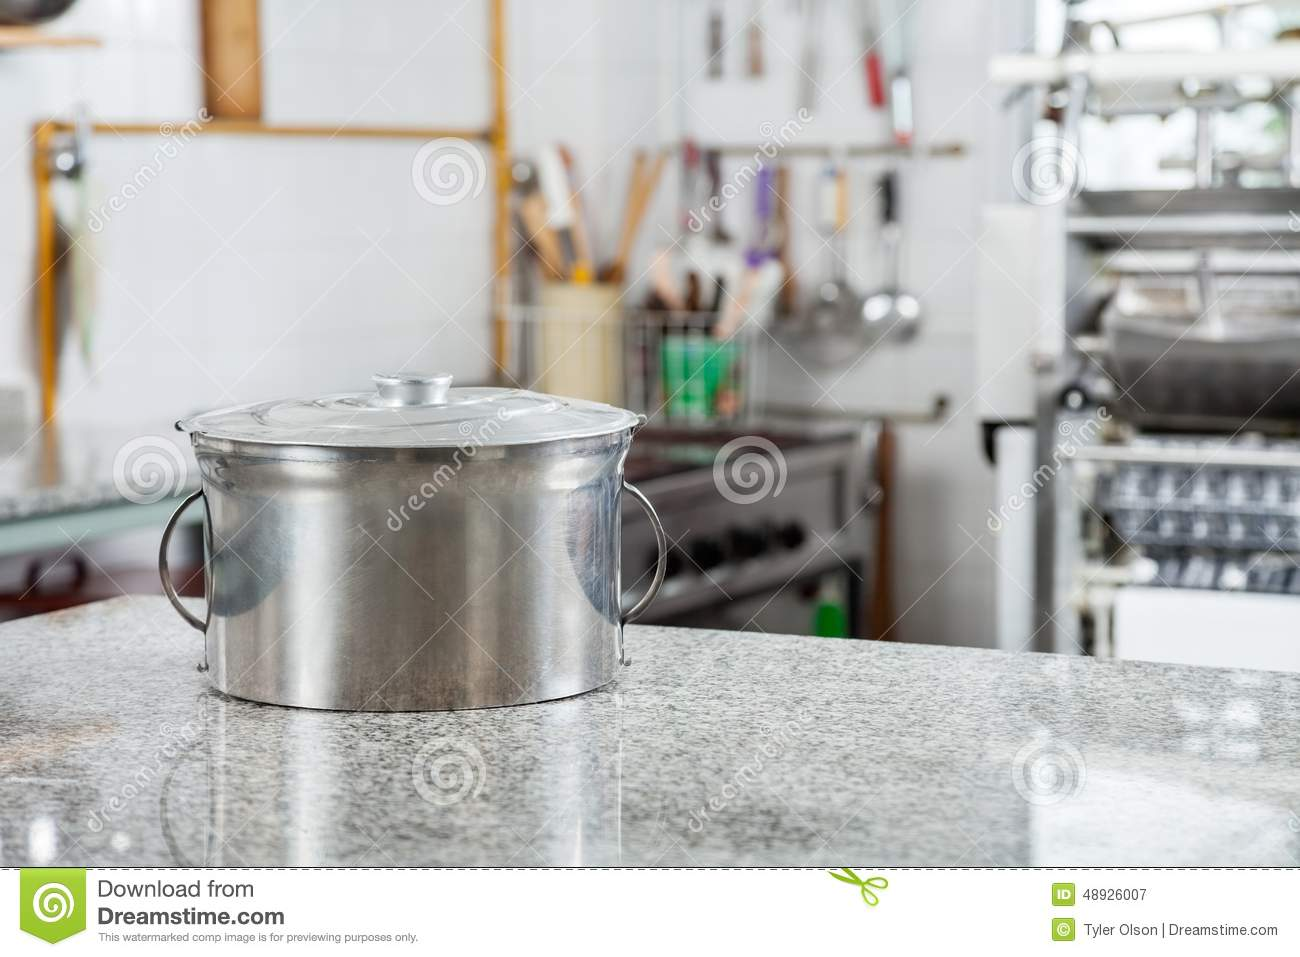 Countertop Material For Commercial Kitchen : Pasta Pot On Countertop In Commercial Kitchen Stock Photo - Image ...